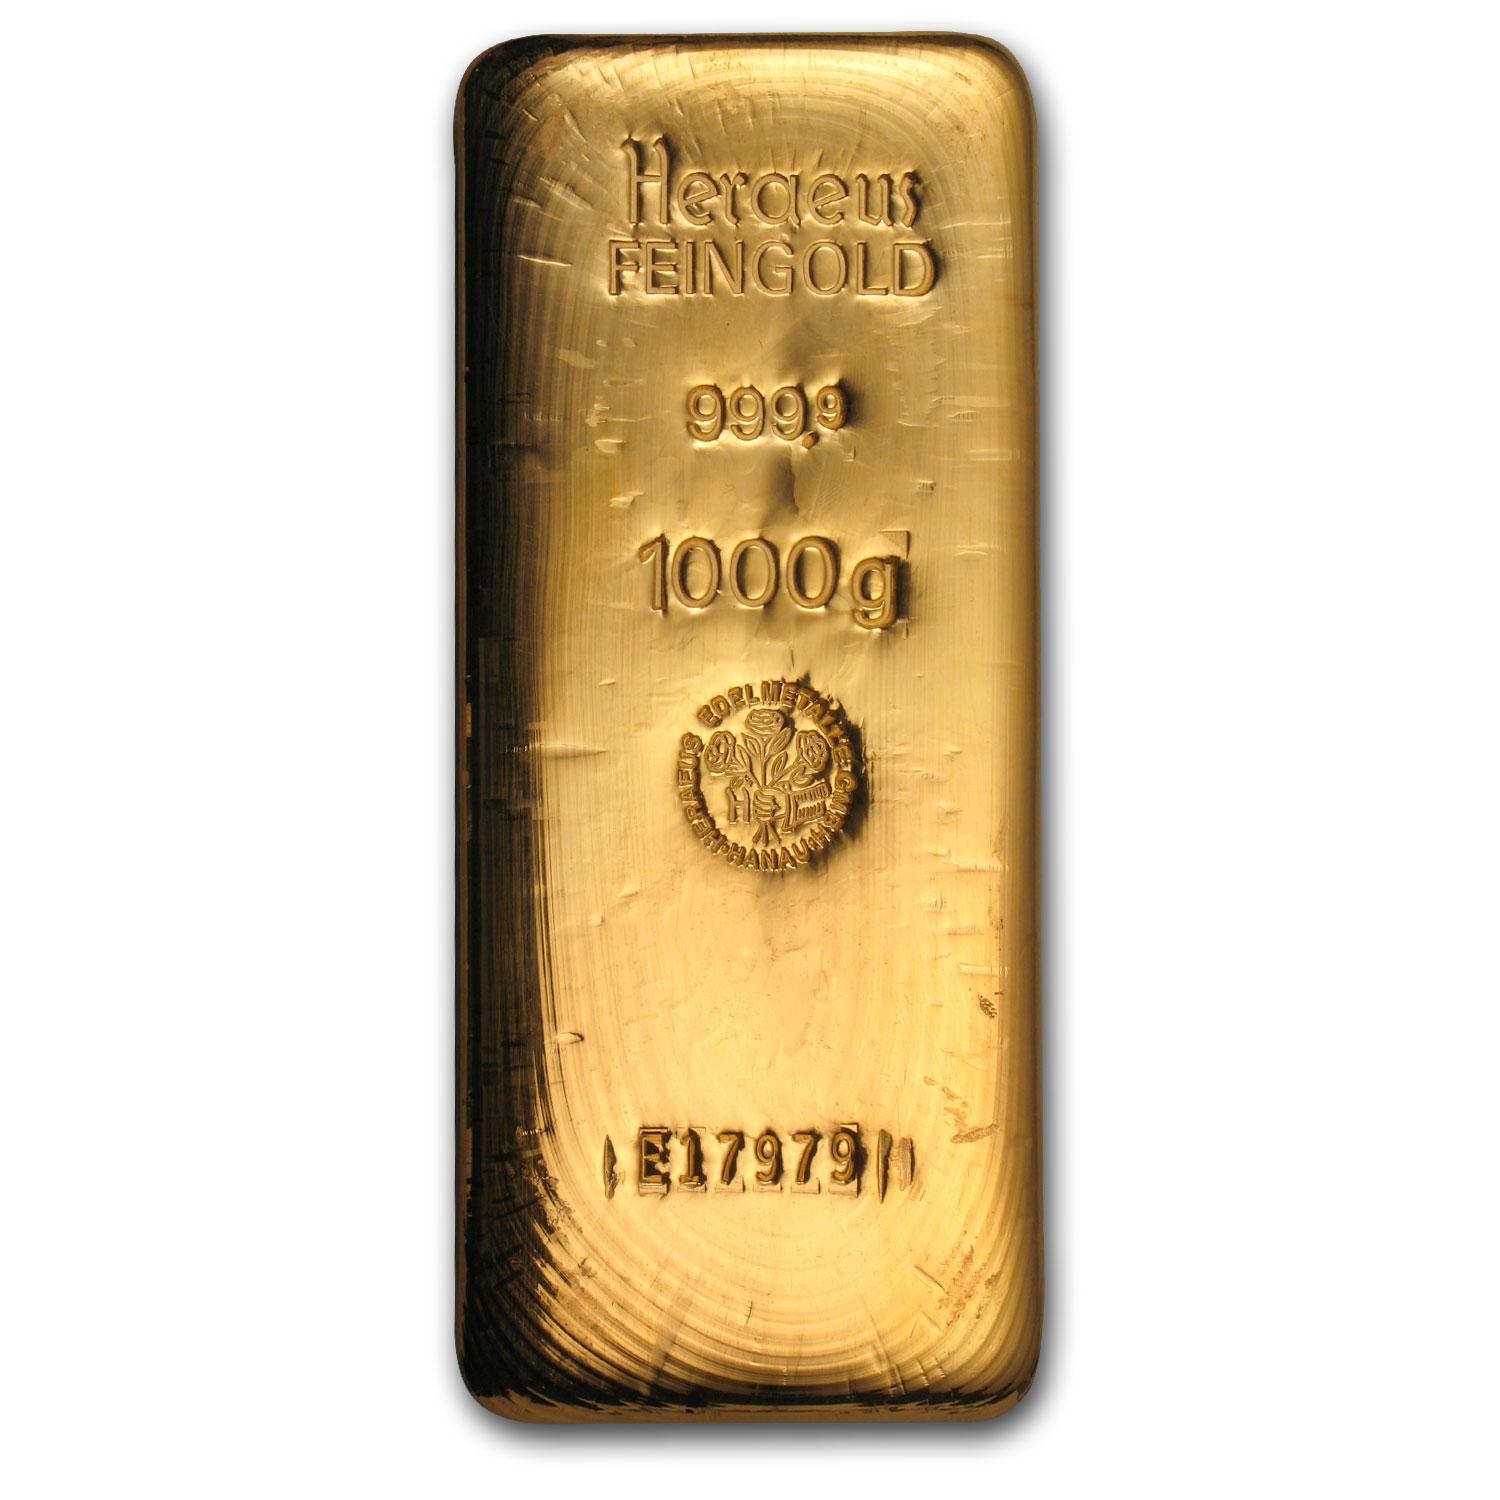 1 kilo Gold Bar - Heraeus